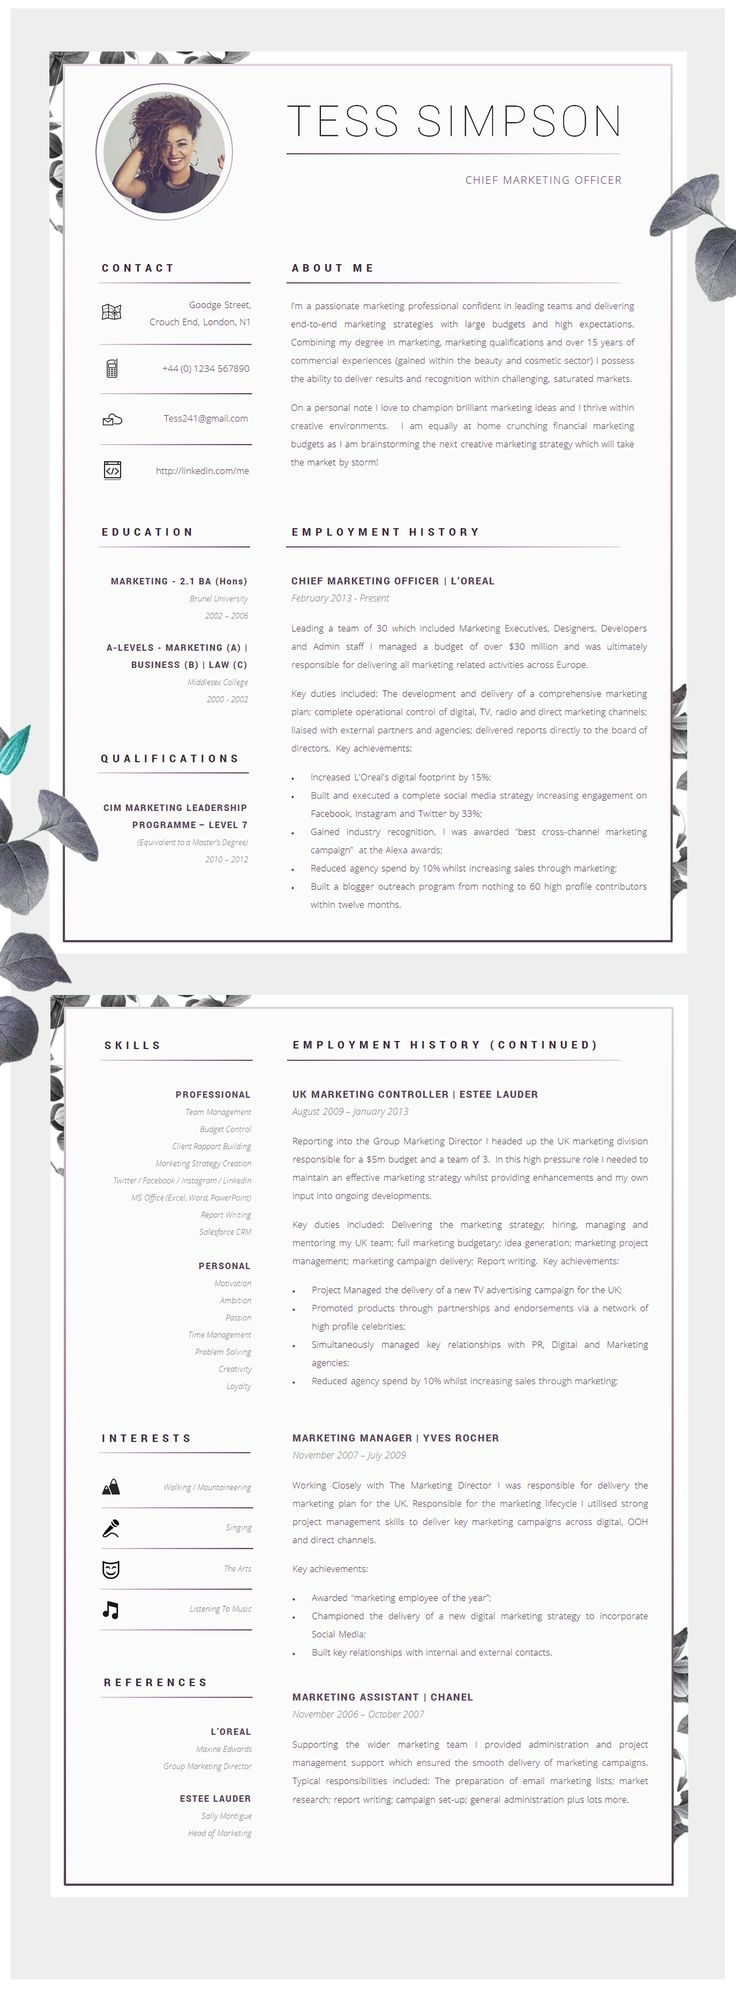 Chief Marketing Officer Resume Extraordinary 1069 Best Resume Ideas Images On Pinterest  Resume Ideas Resume .